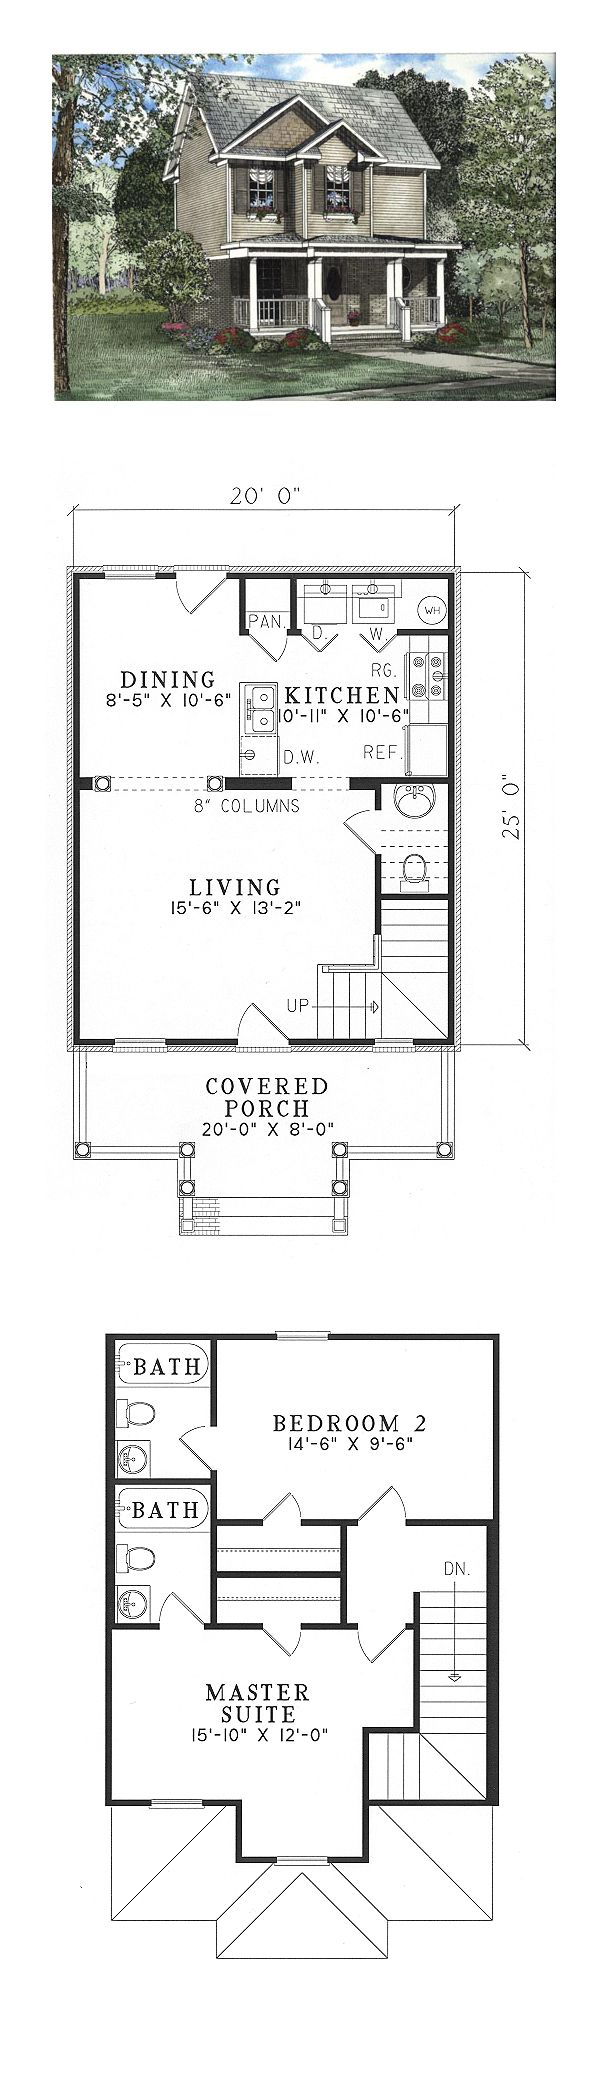 56 best narrow lot home plans images on pinterest narrow for Narrow lot 4 bedroom house plans